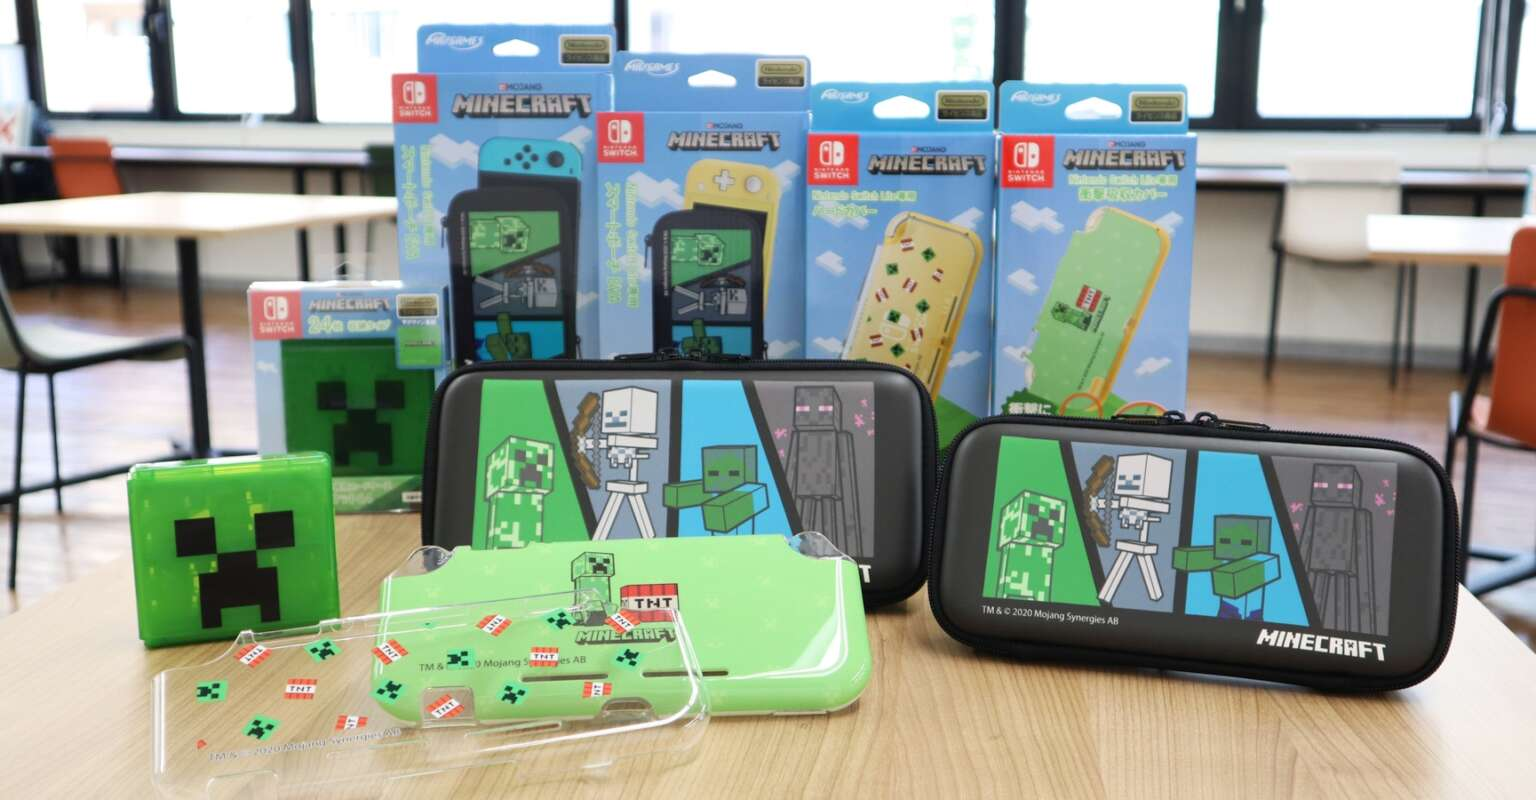 Max Games Releases Minecraft-Themed Nintendo Switch Accessories In Japan